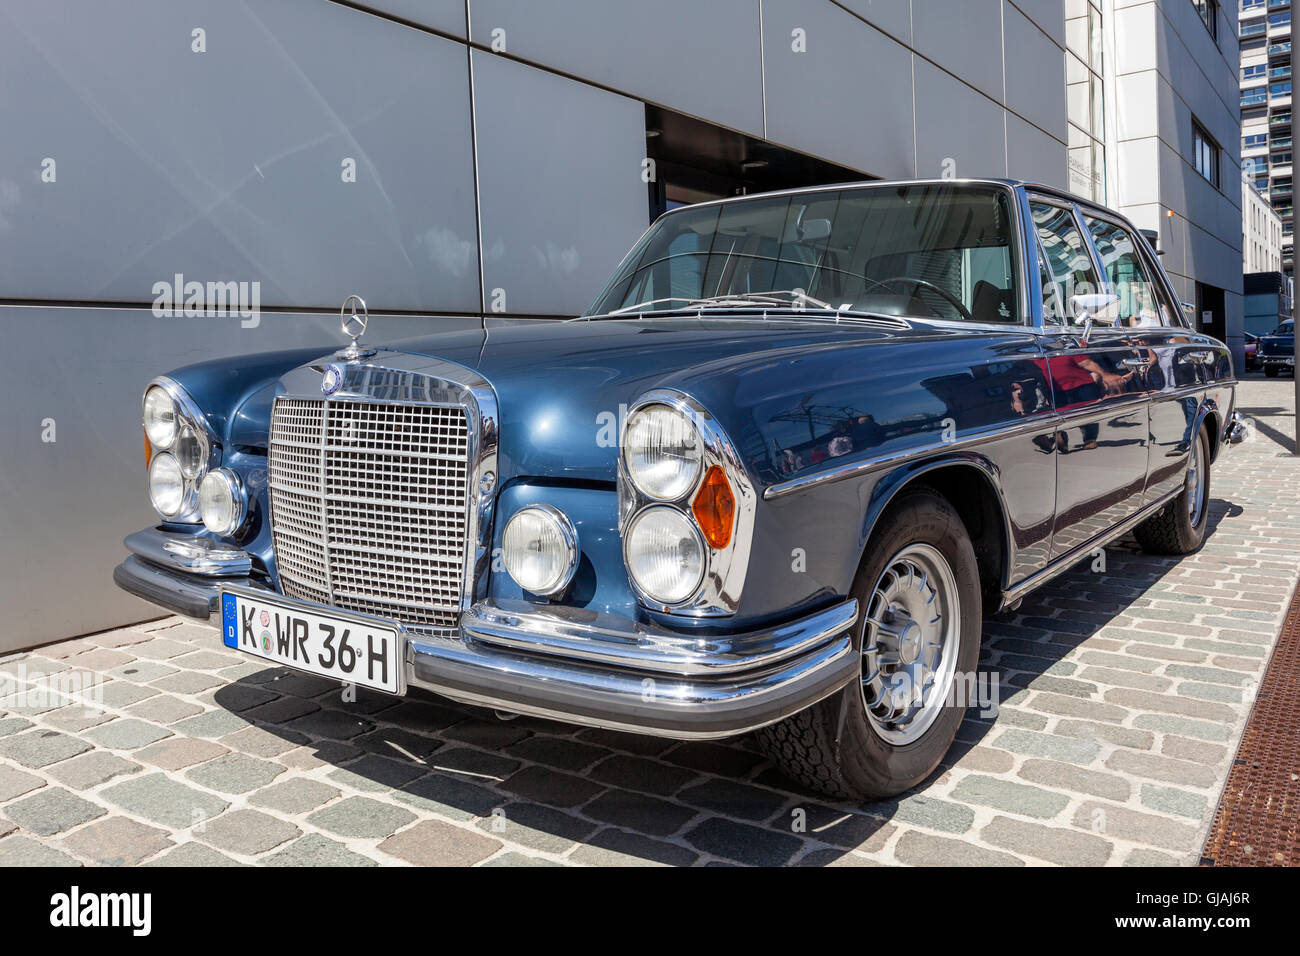 Historic mercedes benz w108 stock photo royalty free for Mercedes benz 108